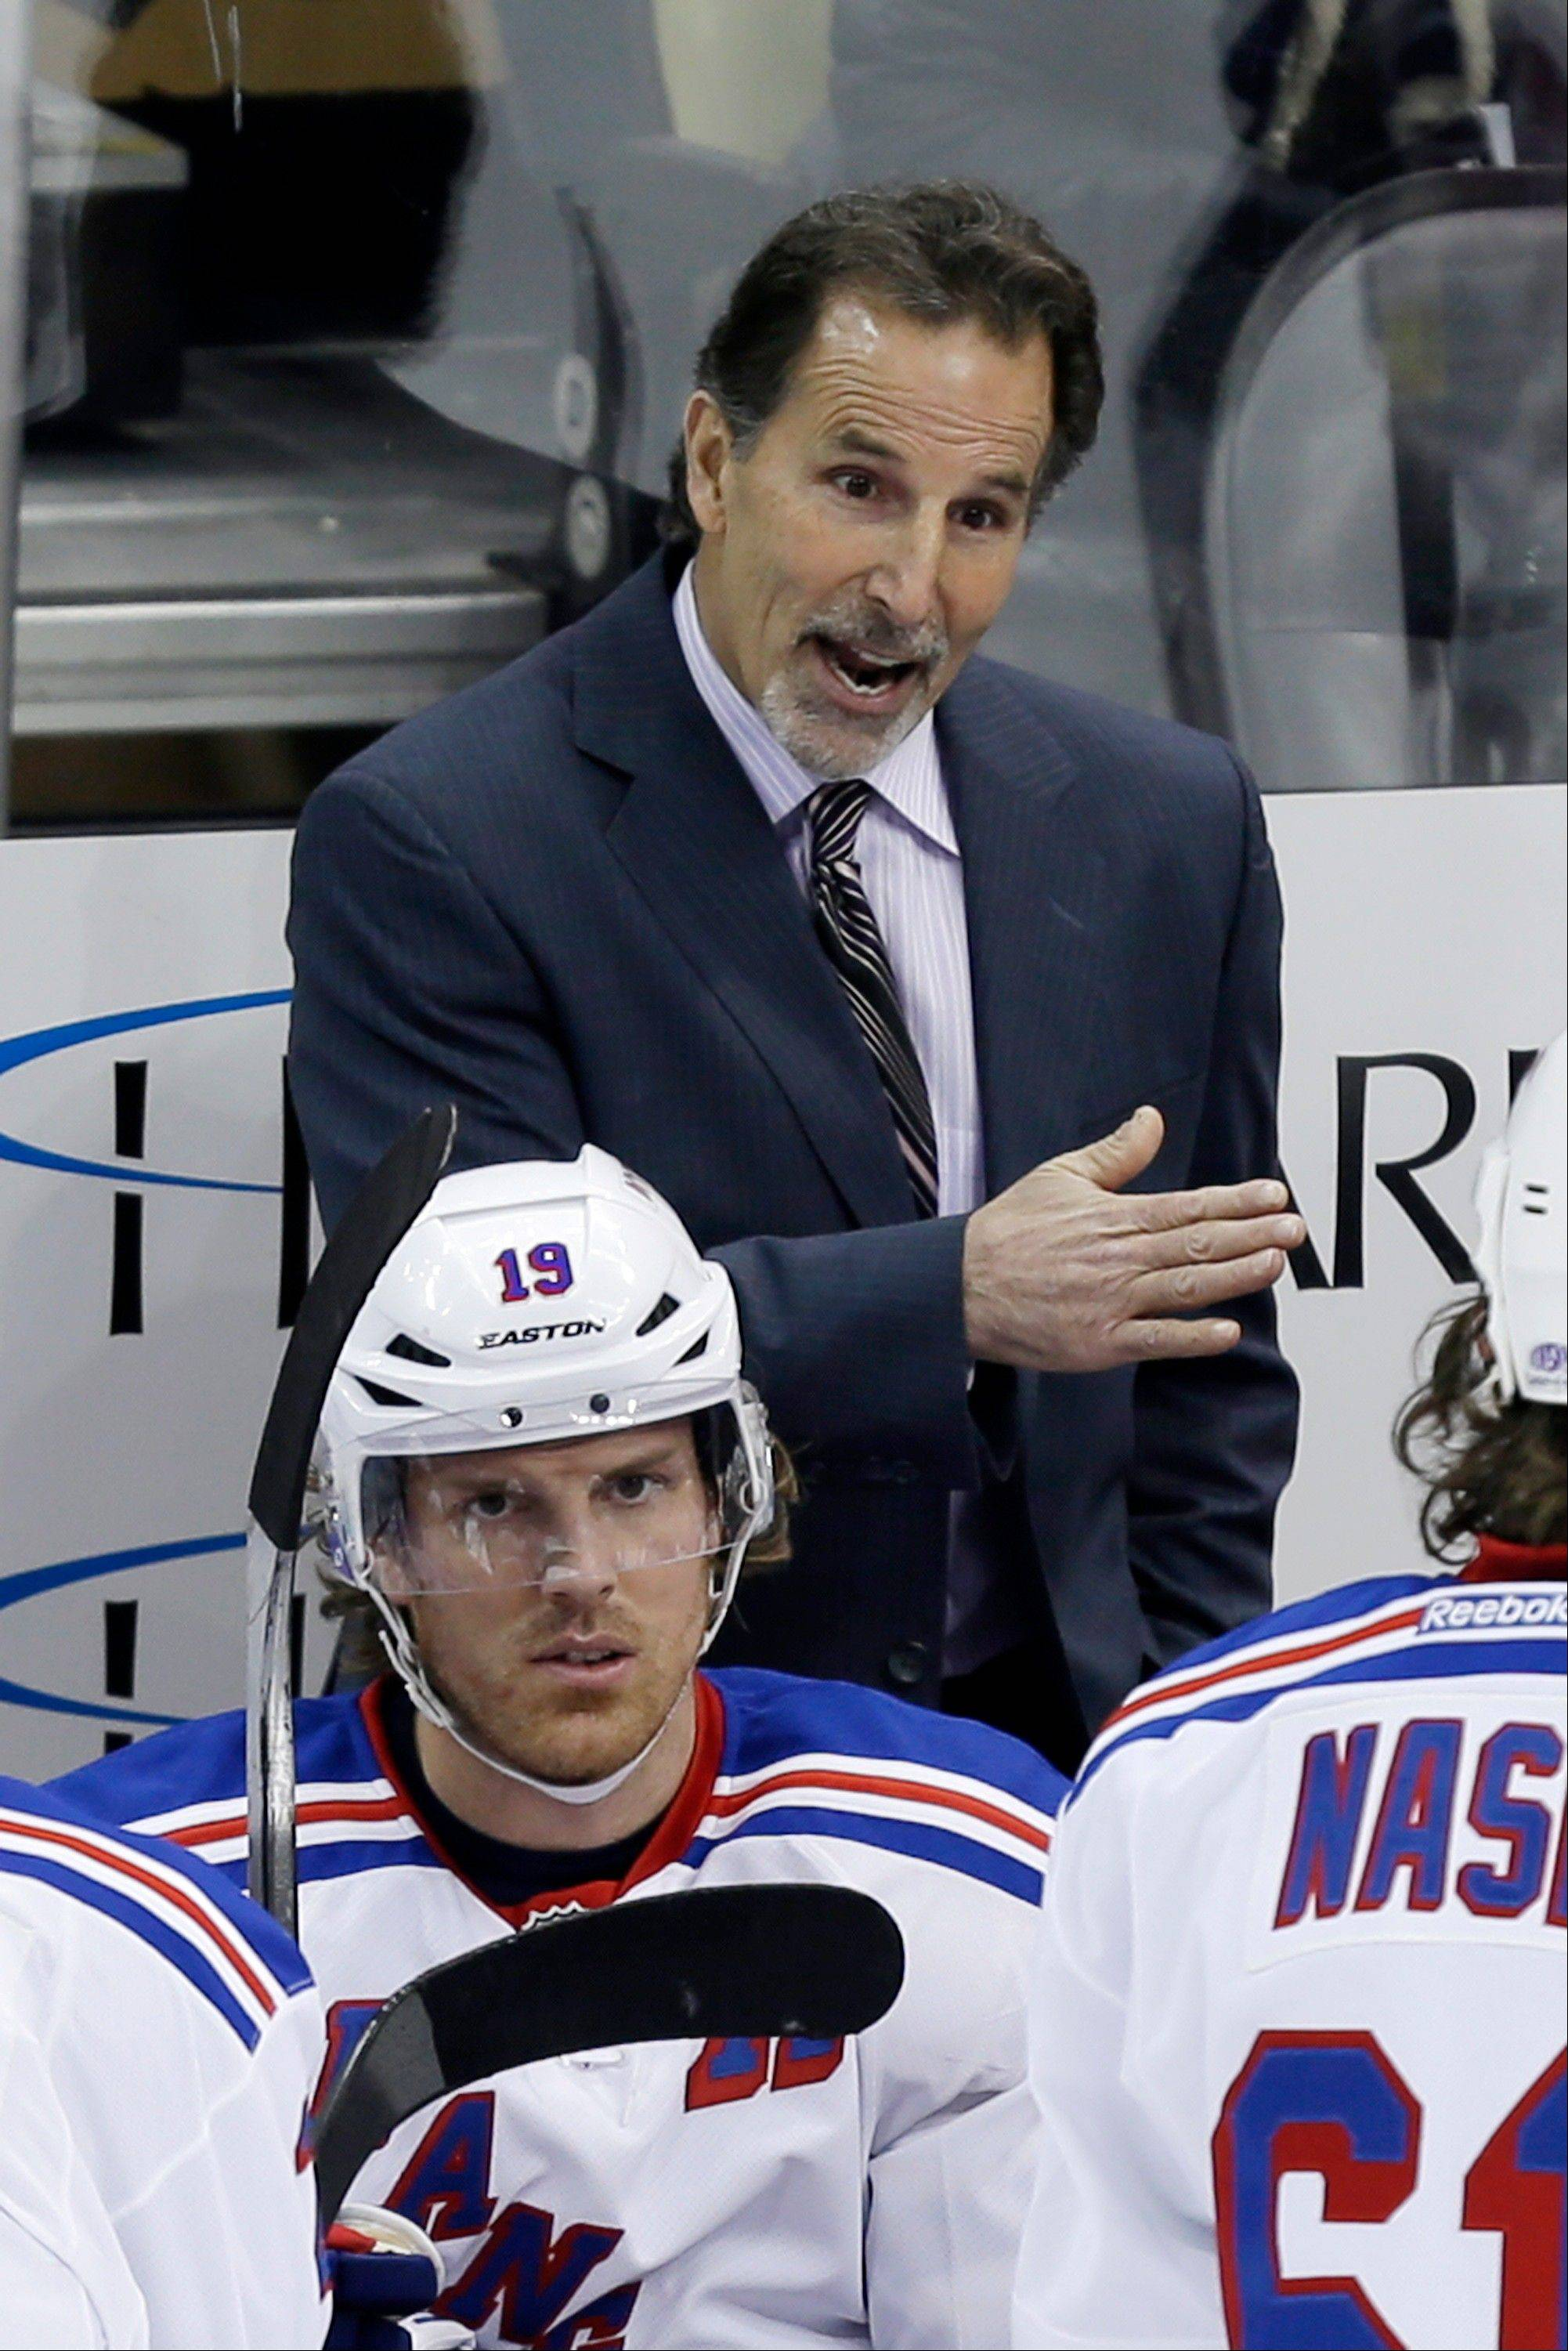 FILE - In this April 5, 2013 file photo, New York Rangers head coach John Tortorella stands behind his bench during an NHL hockey game against the Pittsburgh Penguins in Pittsburgh. The Rangers have fired coach Tortorella, Wednesday, May 29, 2013, four days after New York was eliminated from the Stanley Cup playoffs.